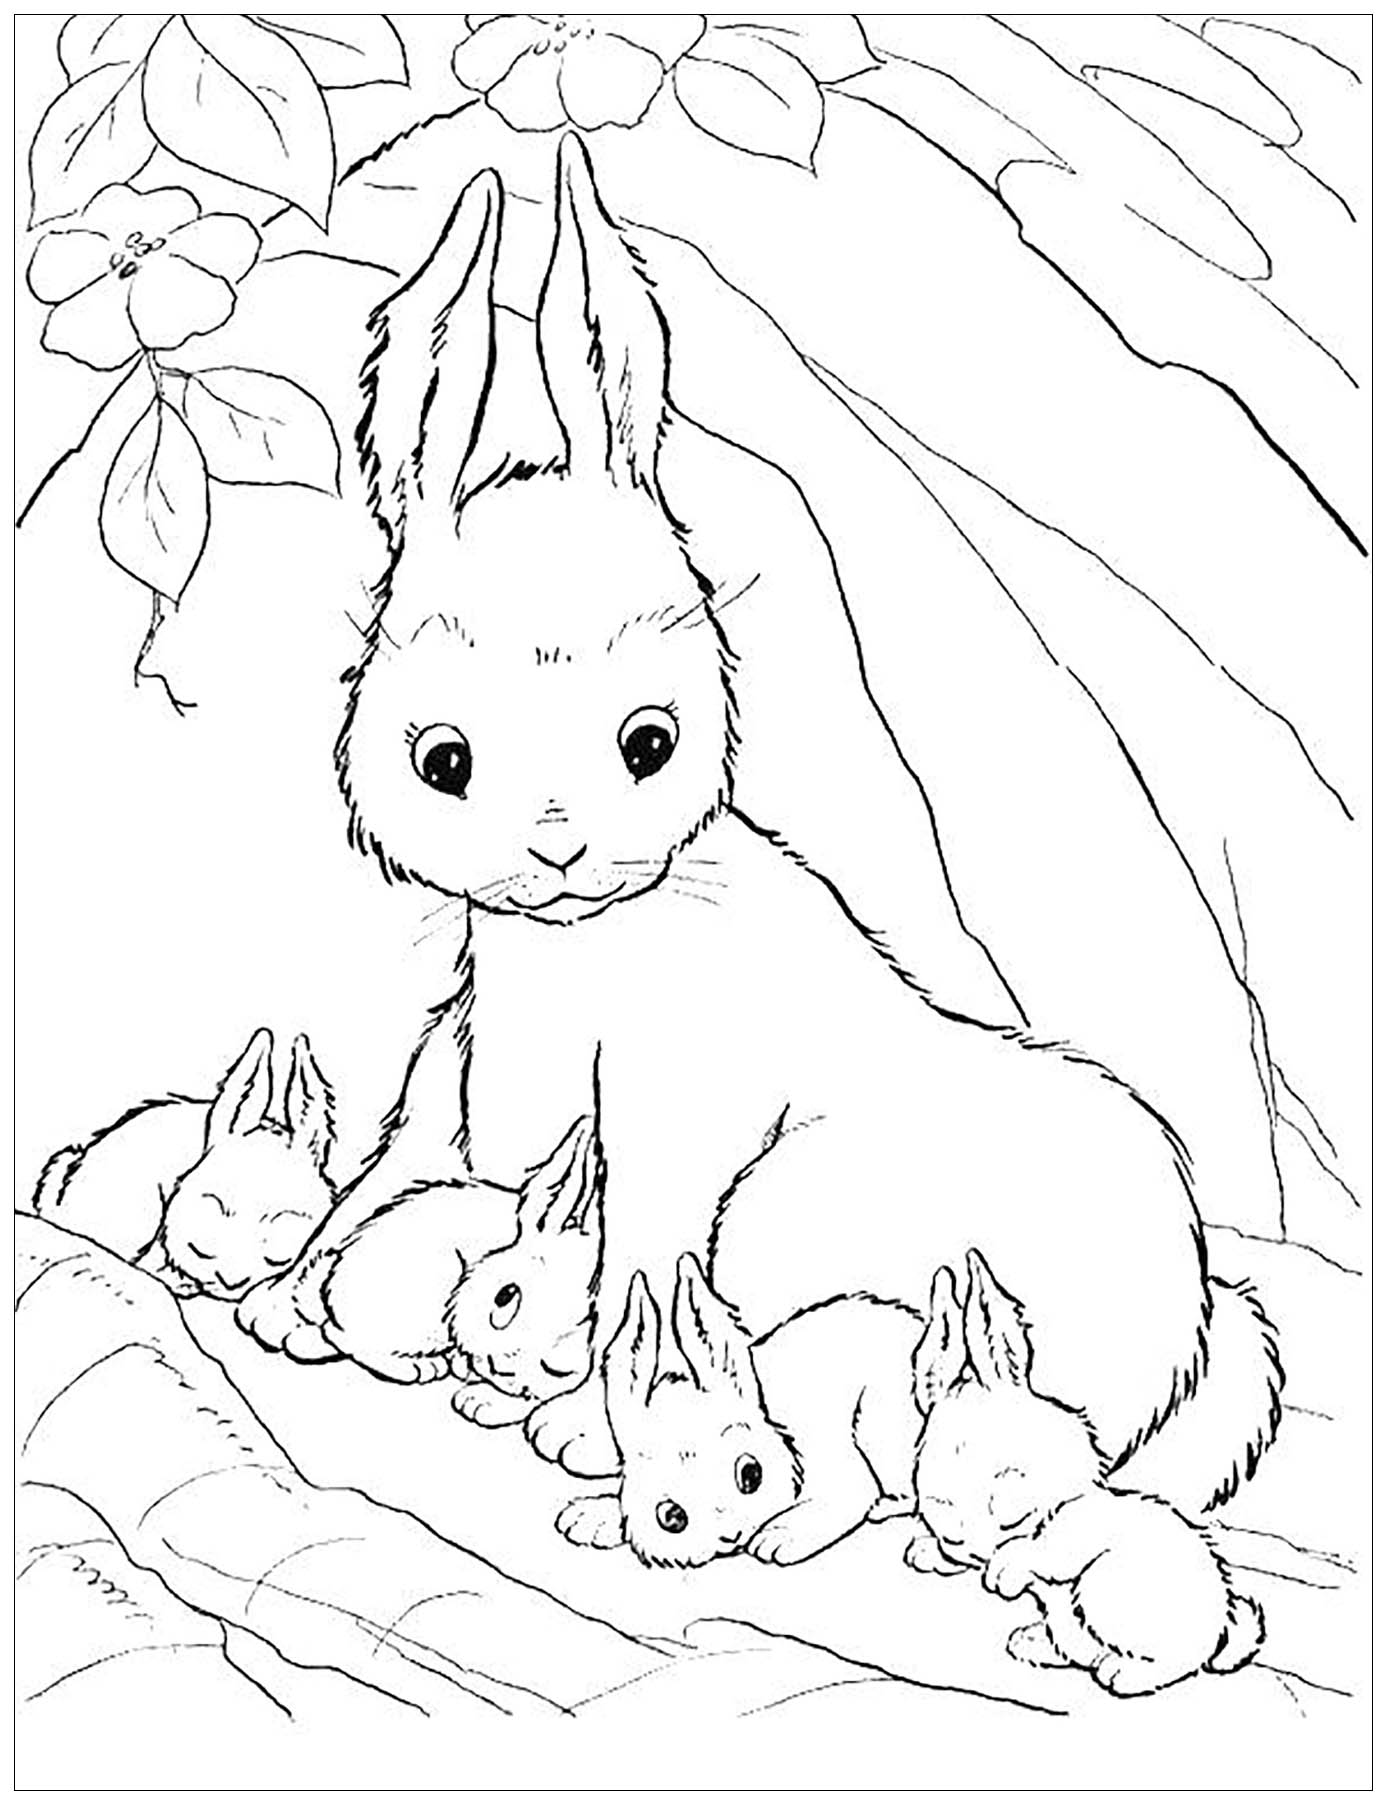 print bunny coloring pages coloring pages of a rabbit printable free coloring sheets print bunny coloring pages